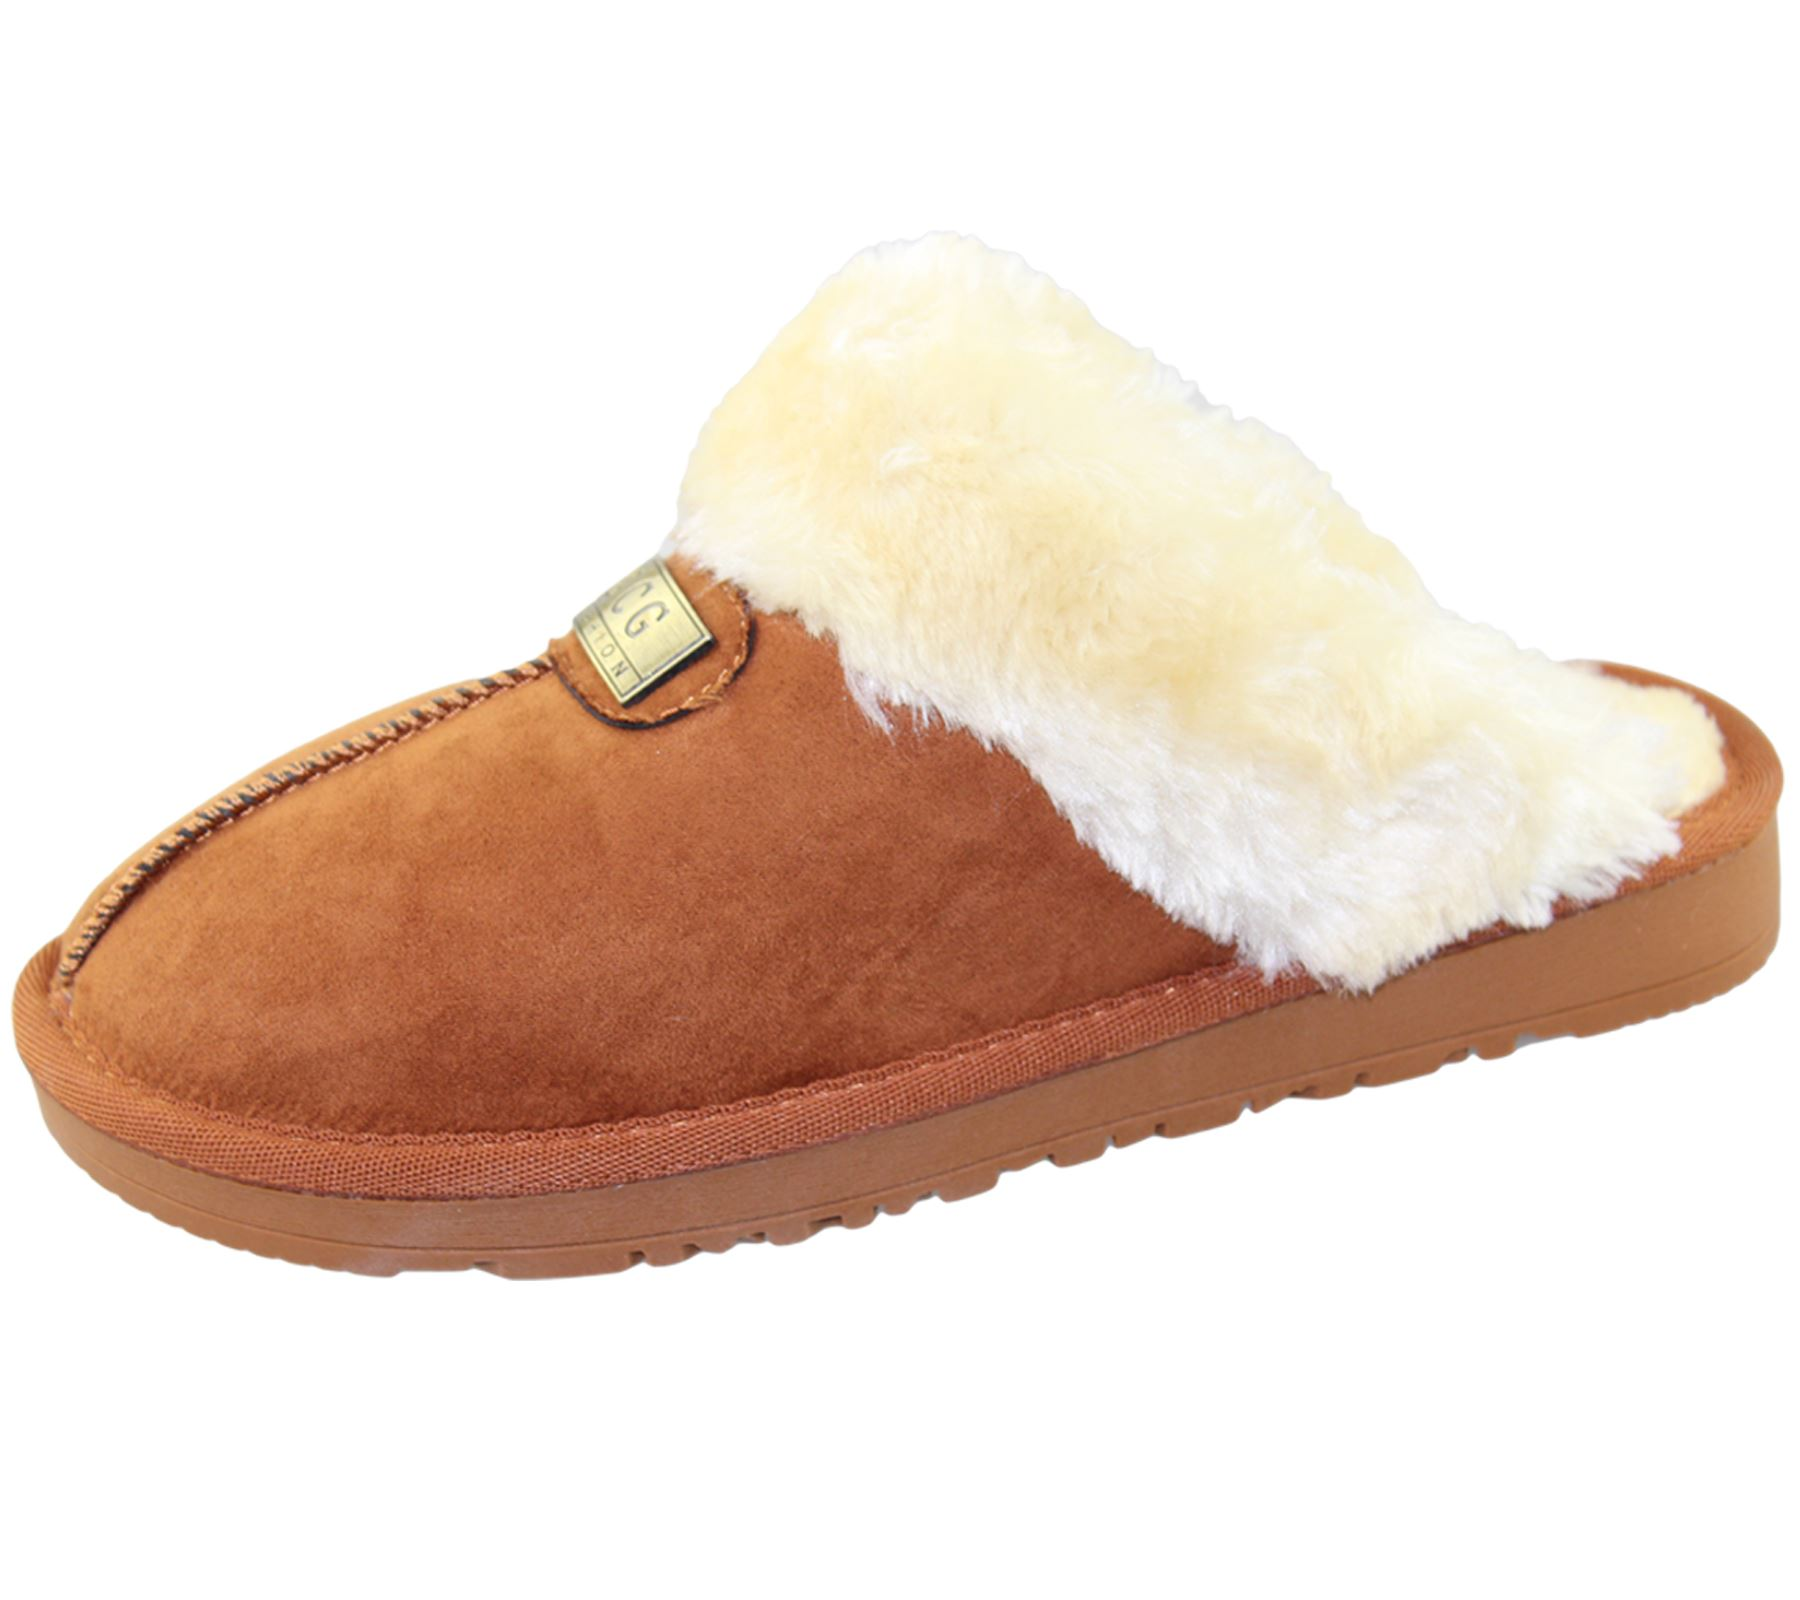 Womens-Fur-Lined-Slippers-Ladies-Mules-Non-Slip-Rubber-Sole-Shoes miniatura 25